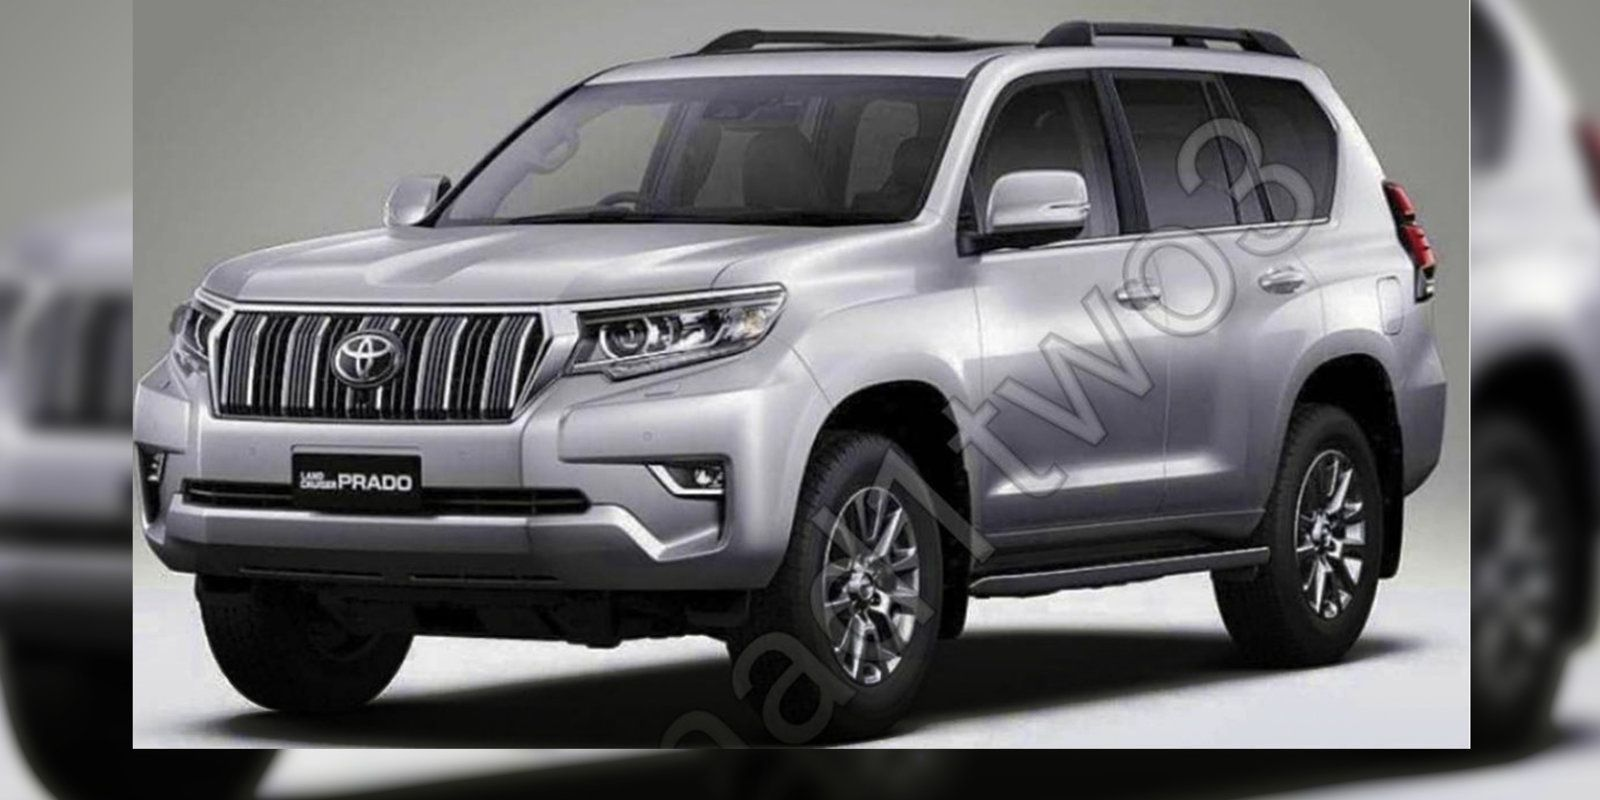 2018 Toyota Land Cruiser Prado Price Interior Engine Toyota Land Cruiser Prado Toyota Land Cruiser Land Cruiser